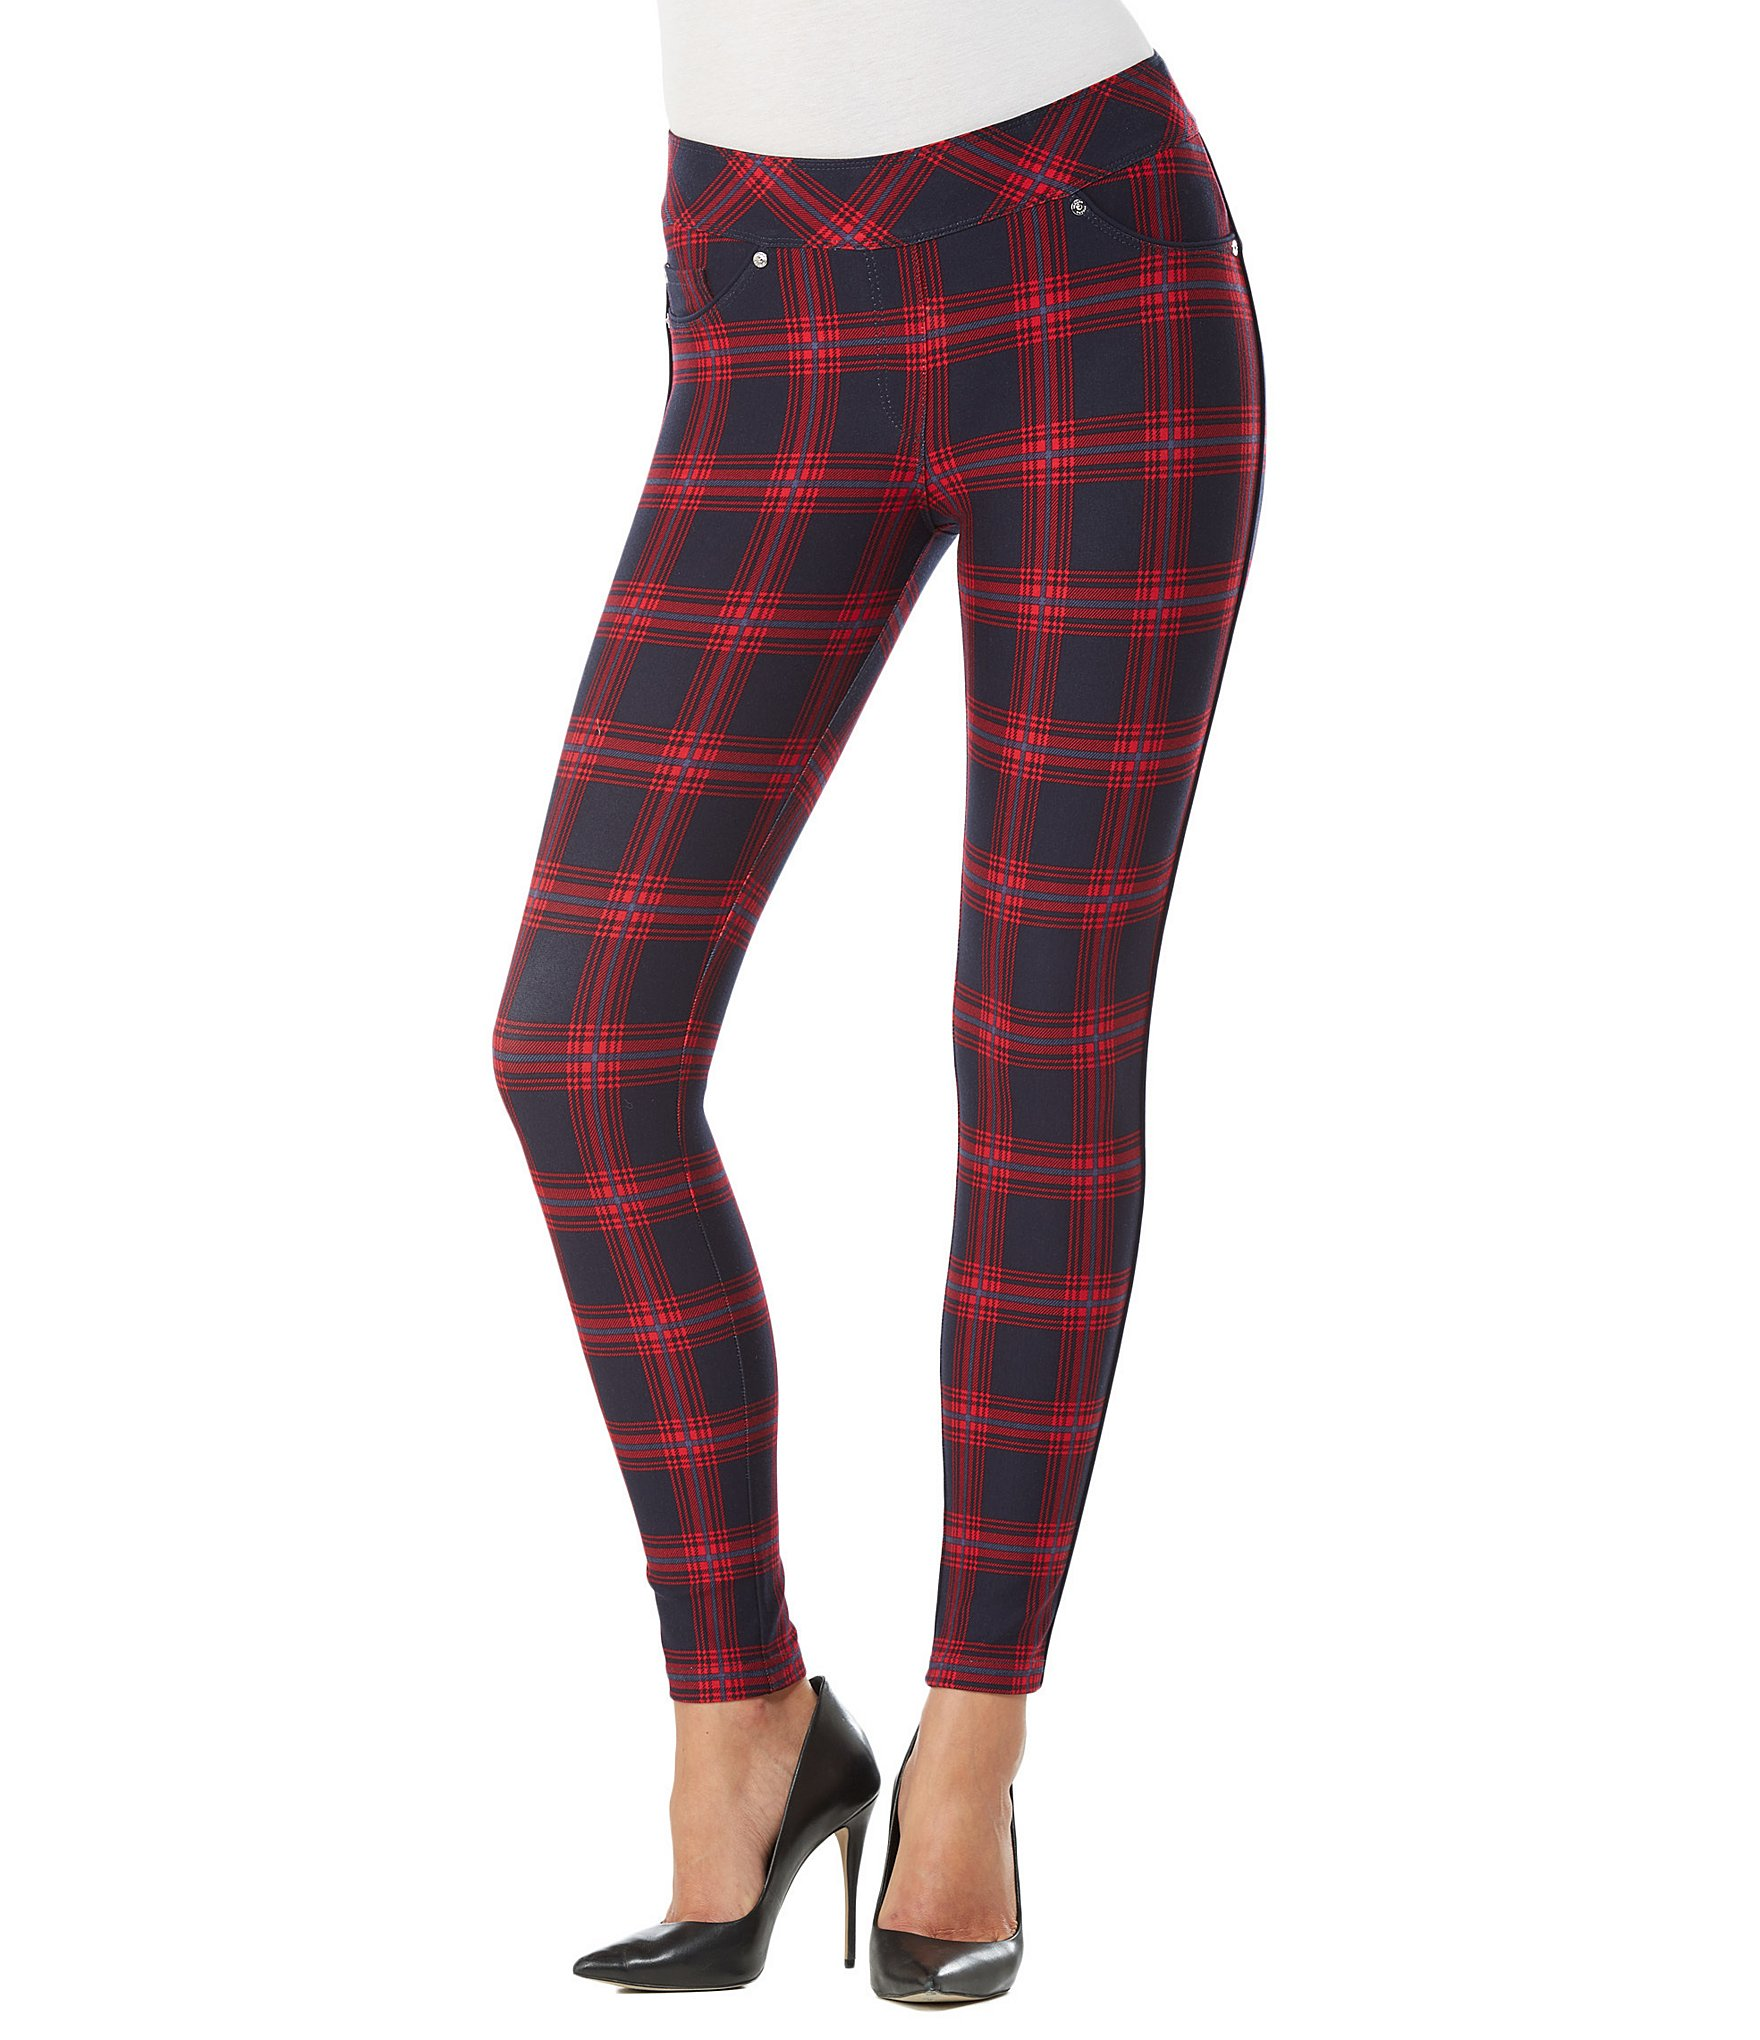 Shop Dillard's collection of pants for the latest styles of Peter Nygard women's pants in a variety of patterns and materials. From casual and dress to printed and cropped pants Dillard's women's pant collection has it all.